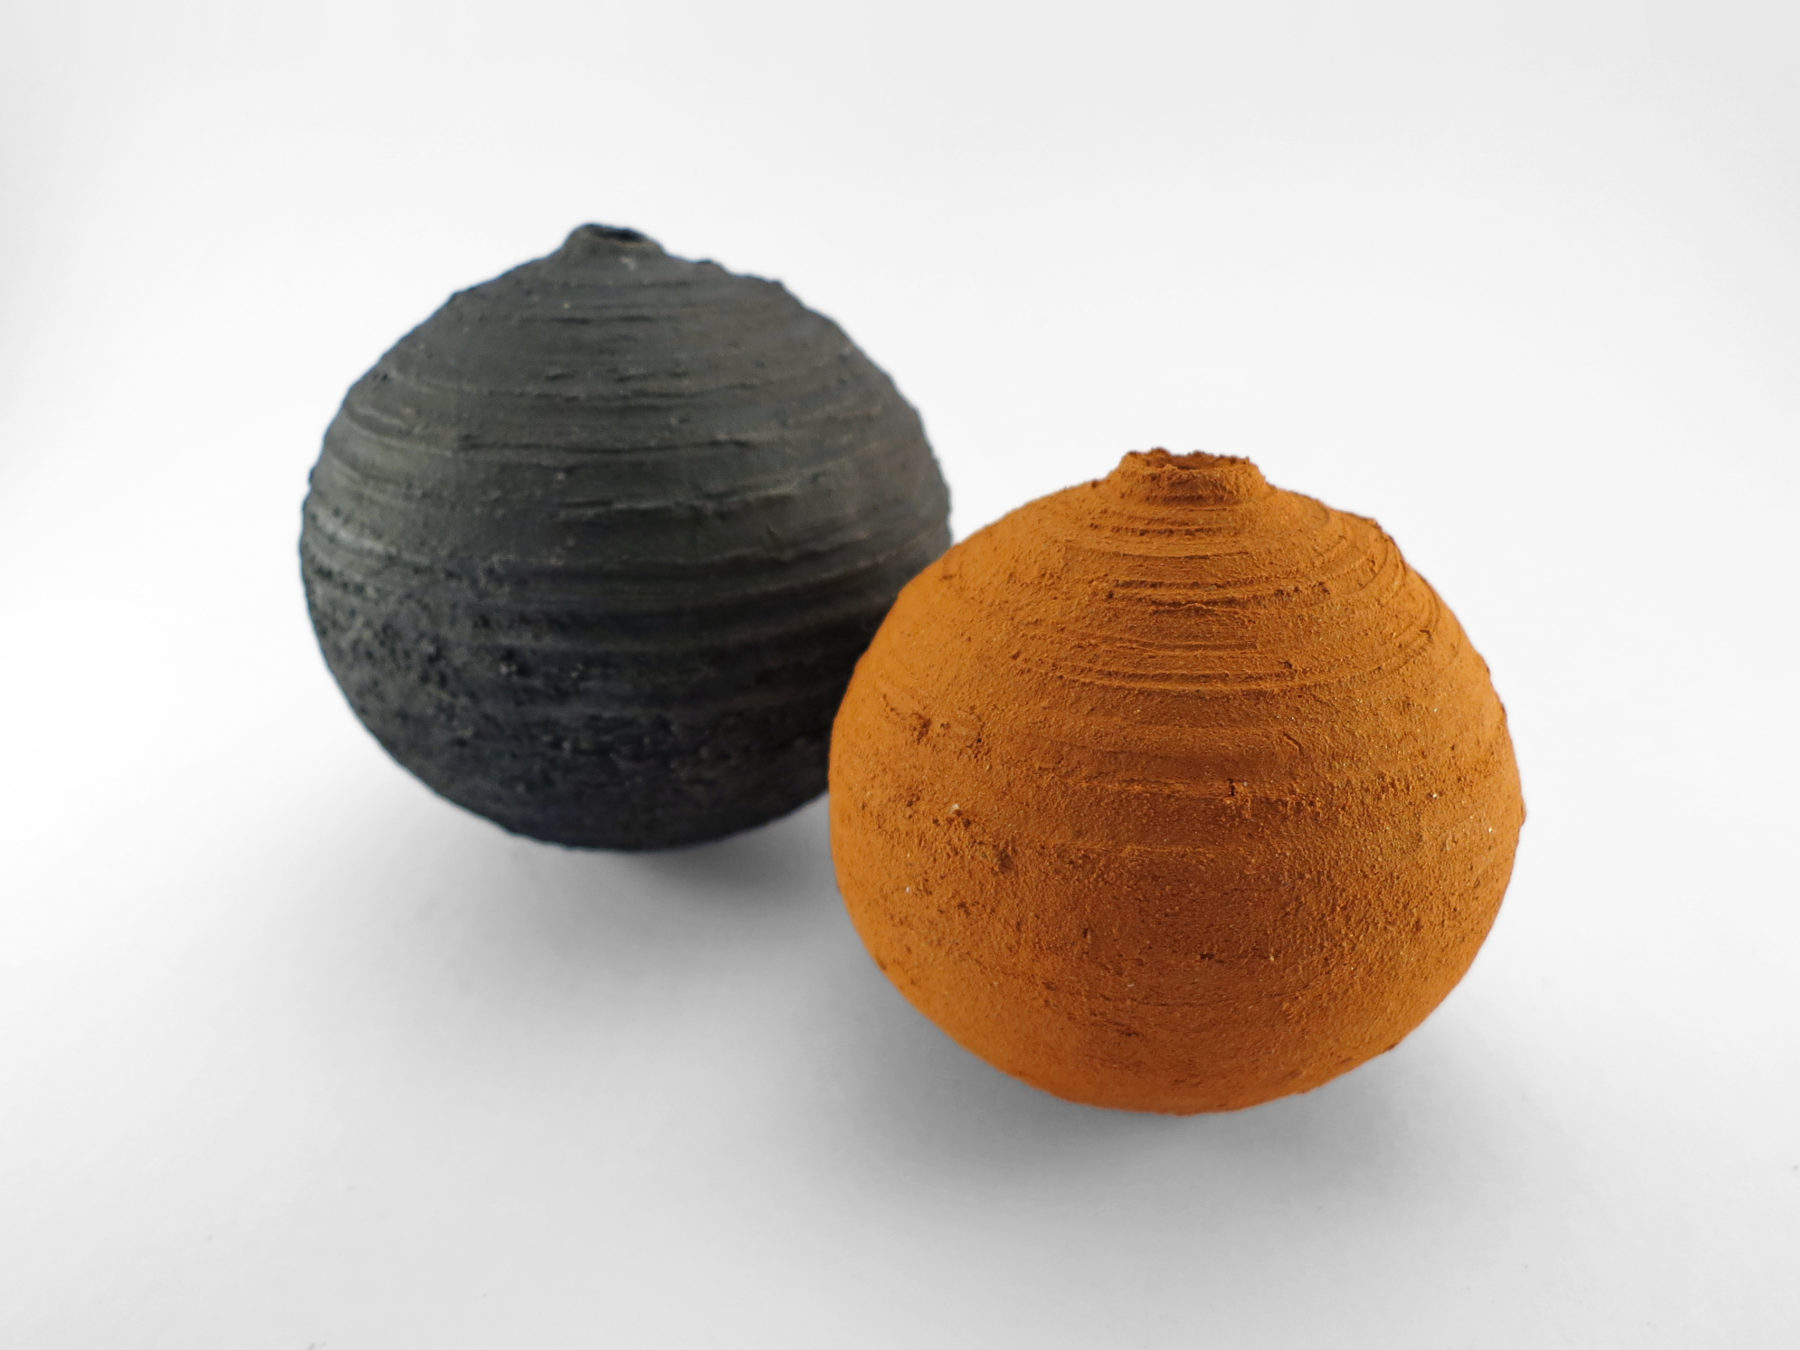 C13, Bound by Hand: Whispering Globes from the Wild Clay Series - Ildikó Károlyi